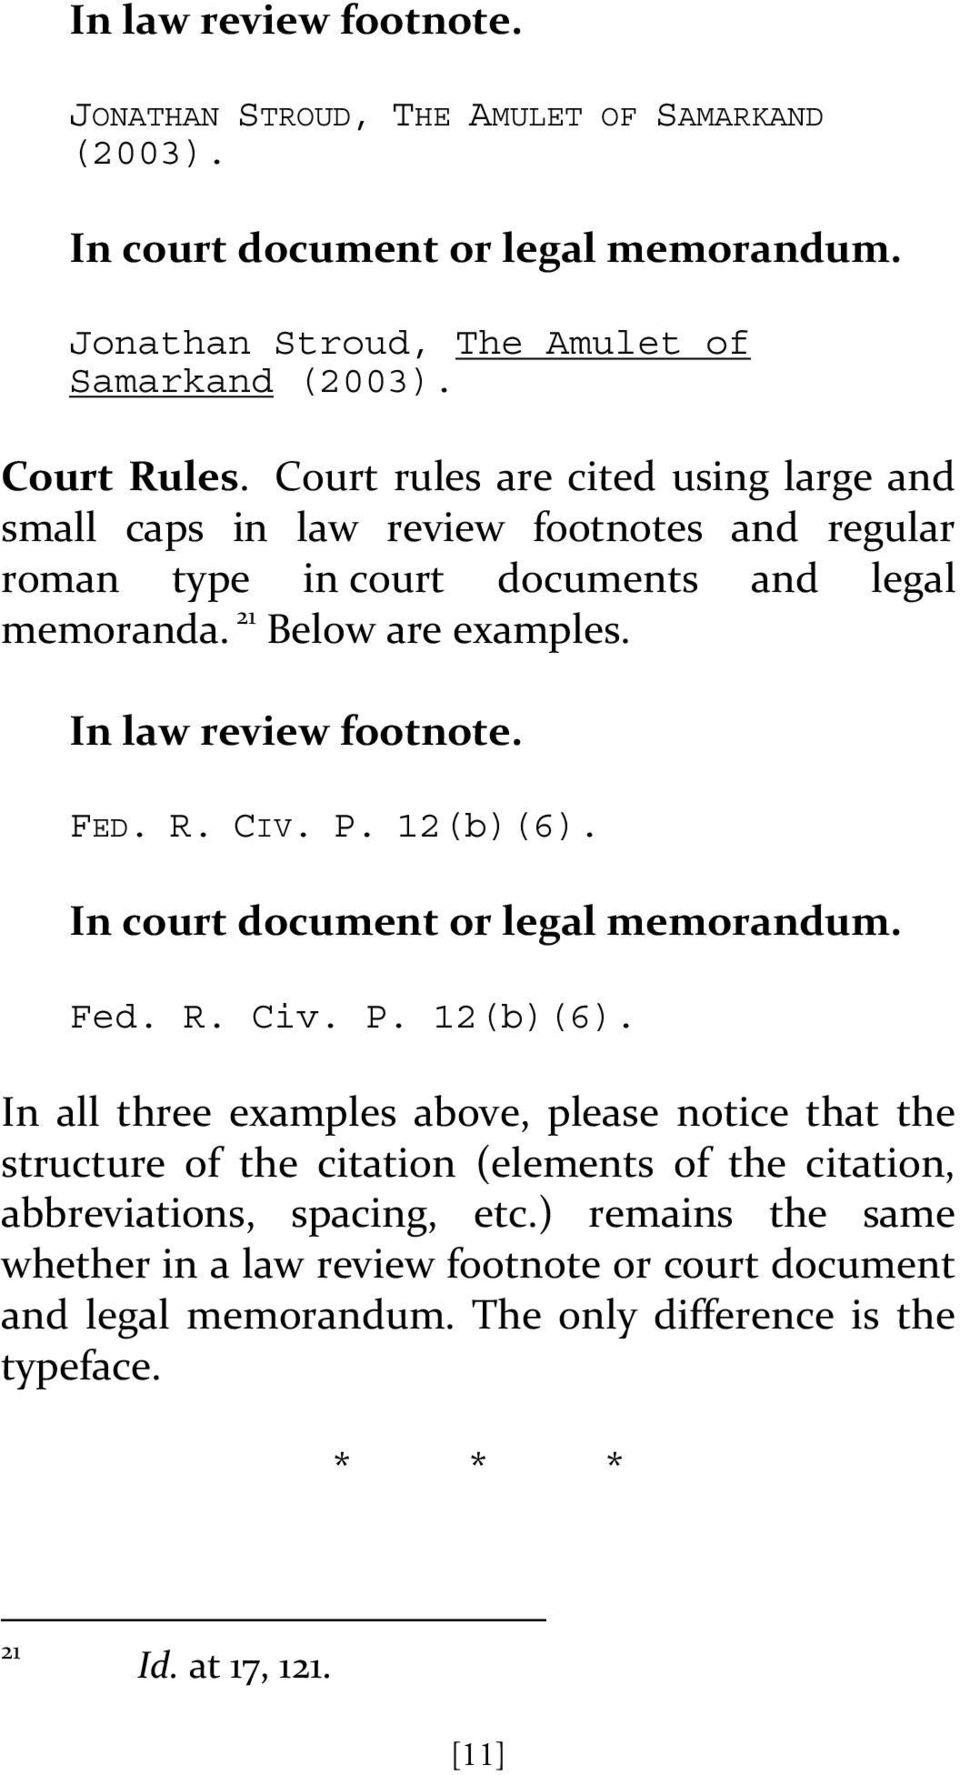 FED. R. CIV. P. 12(b)(6). In court document or legal memorandum. Fed. R. Civ. P. 12(b)(6). In all three examples above, please notice that the structure of the citation (elements of the citation, abbreviations, spacing, etc.